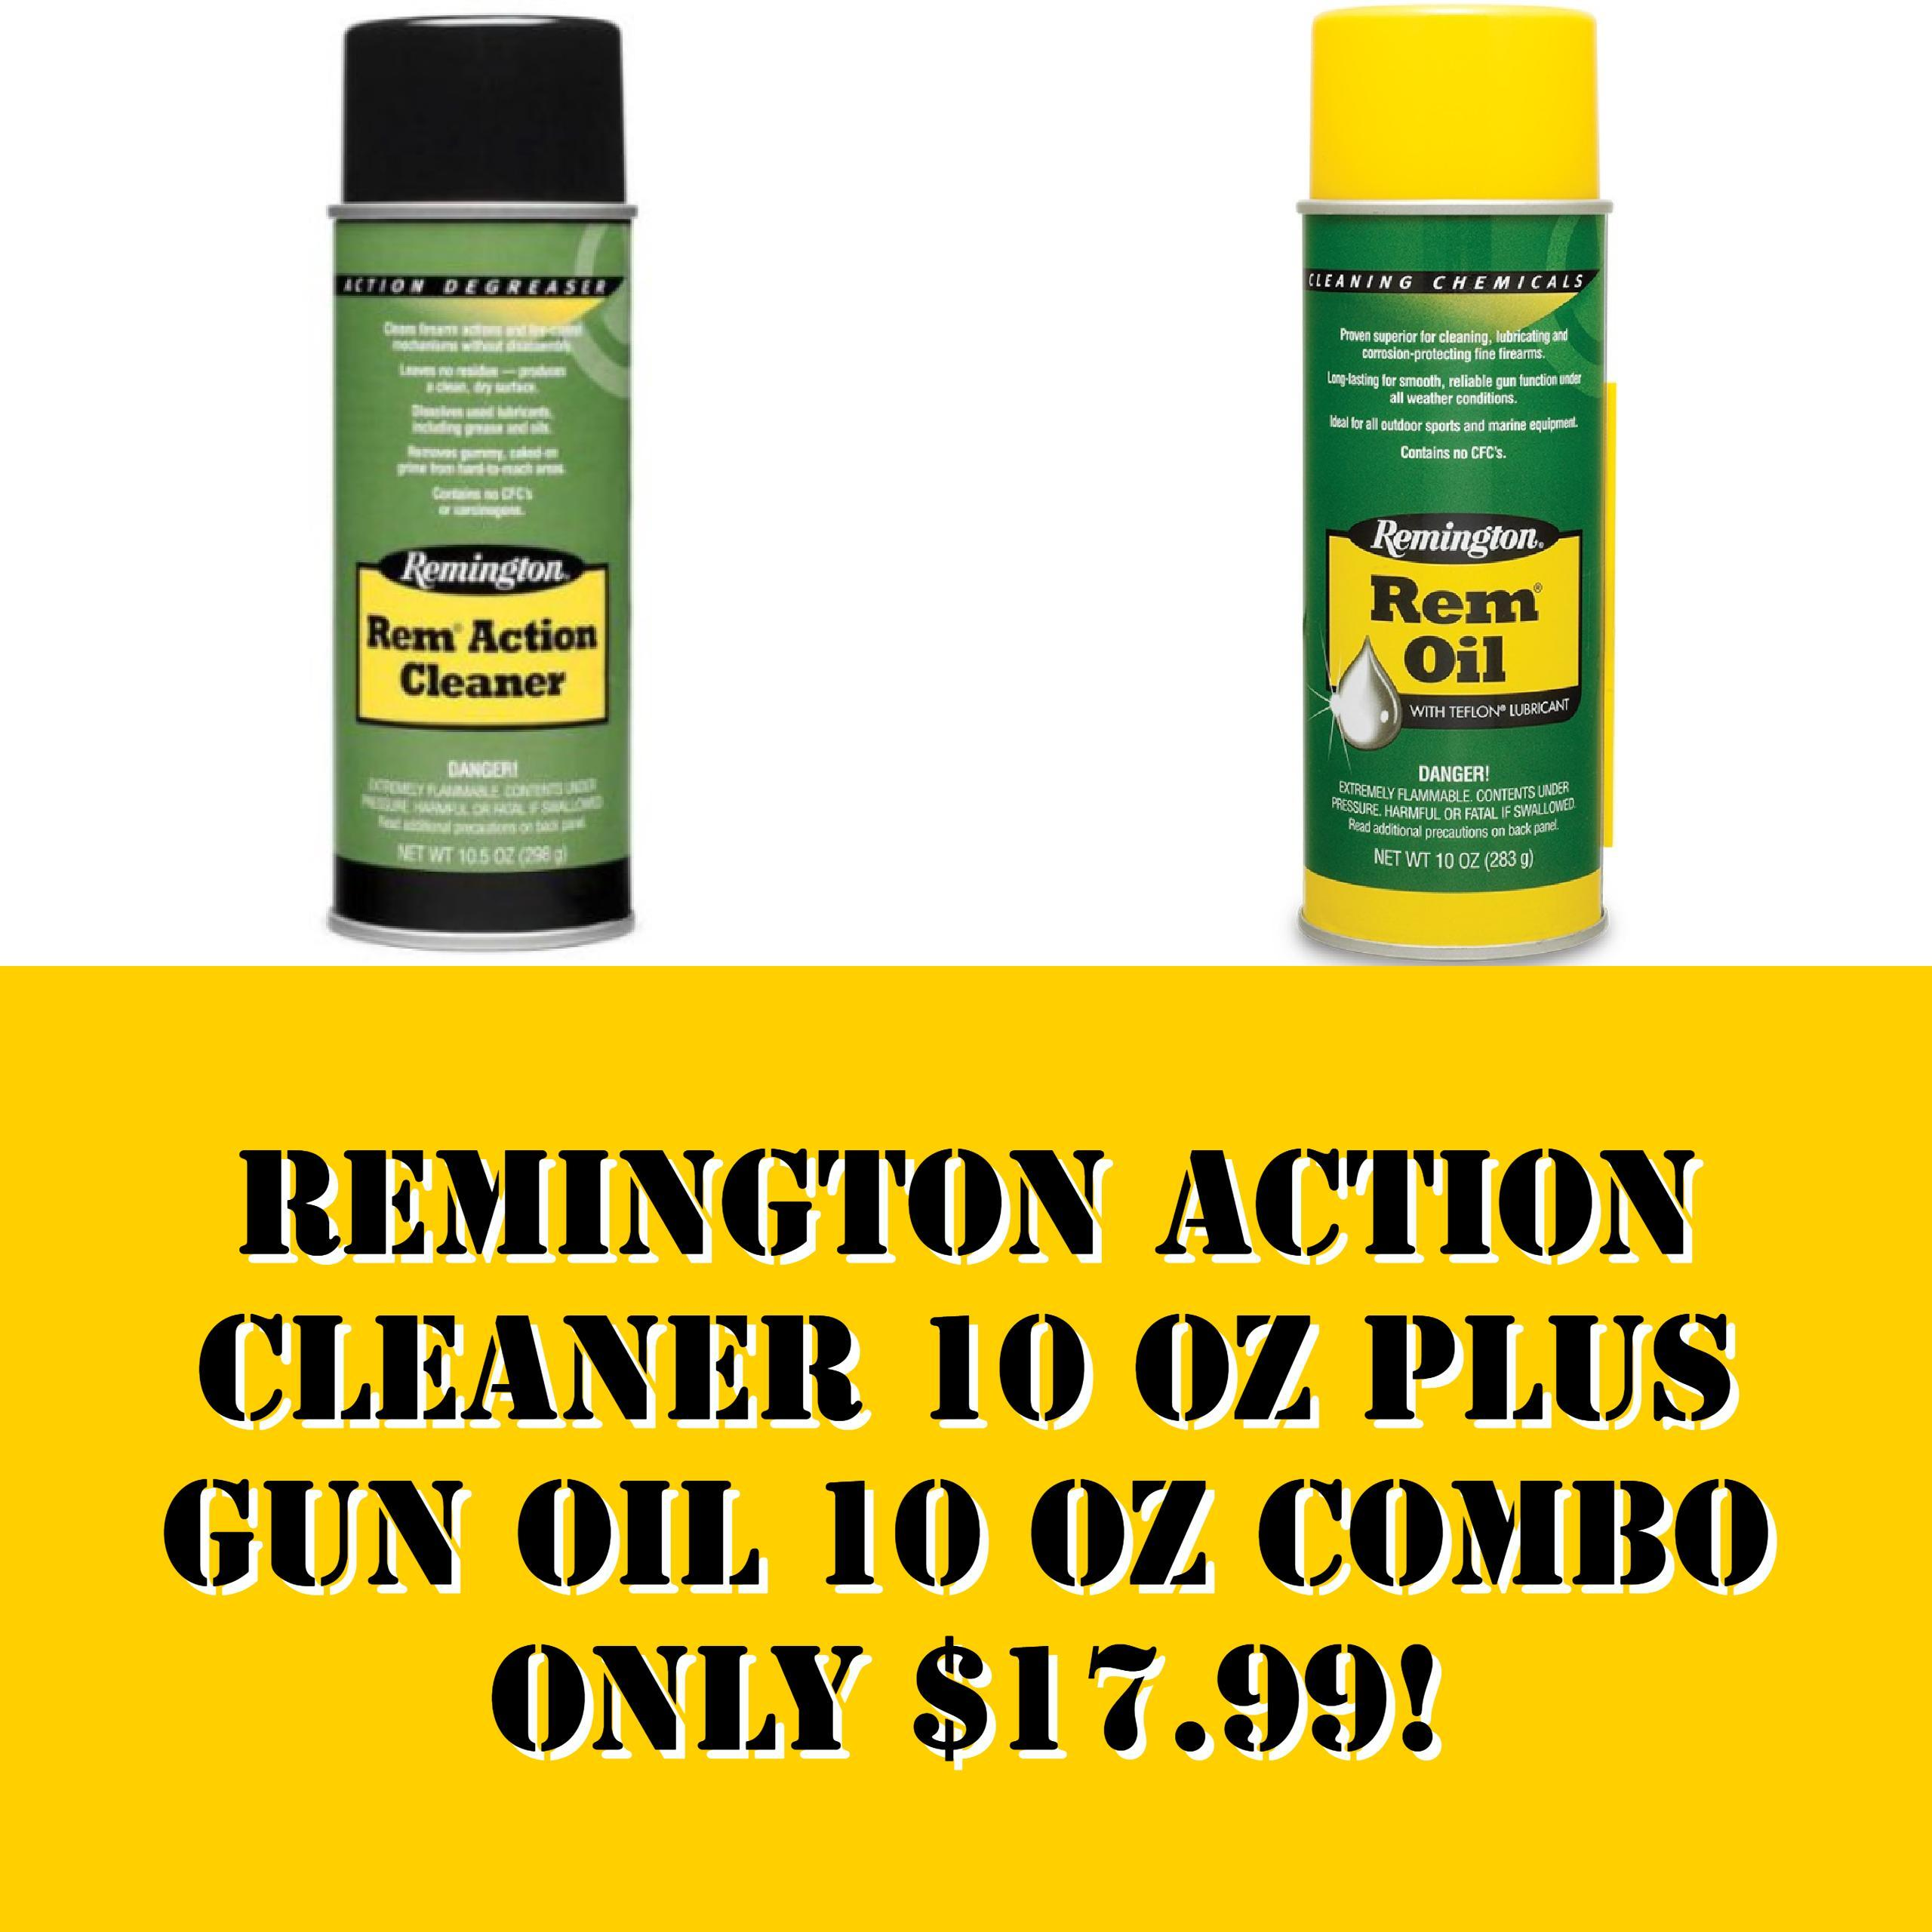 REMINGTON ACTION CLEANER 10 oz PLUS GUN OIL 10 oz COMBO